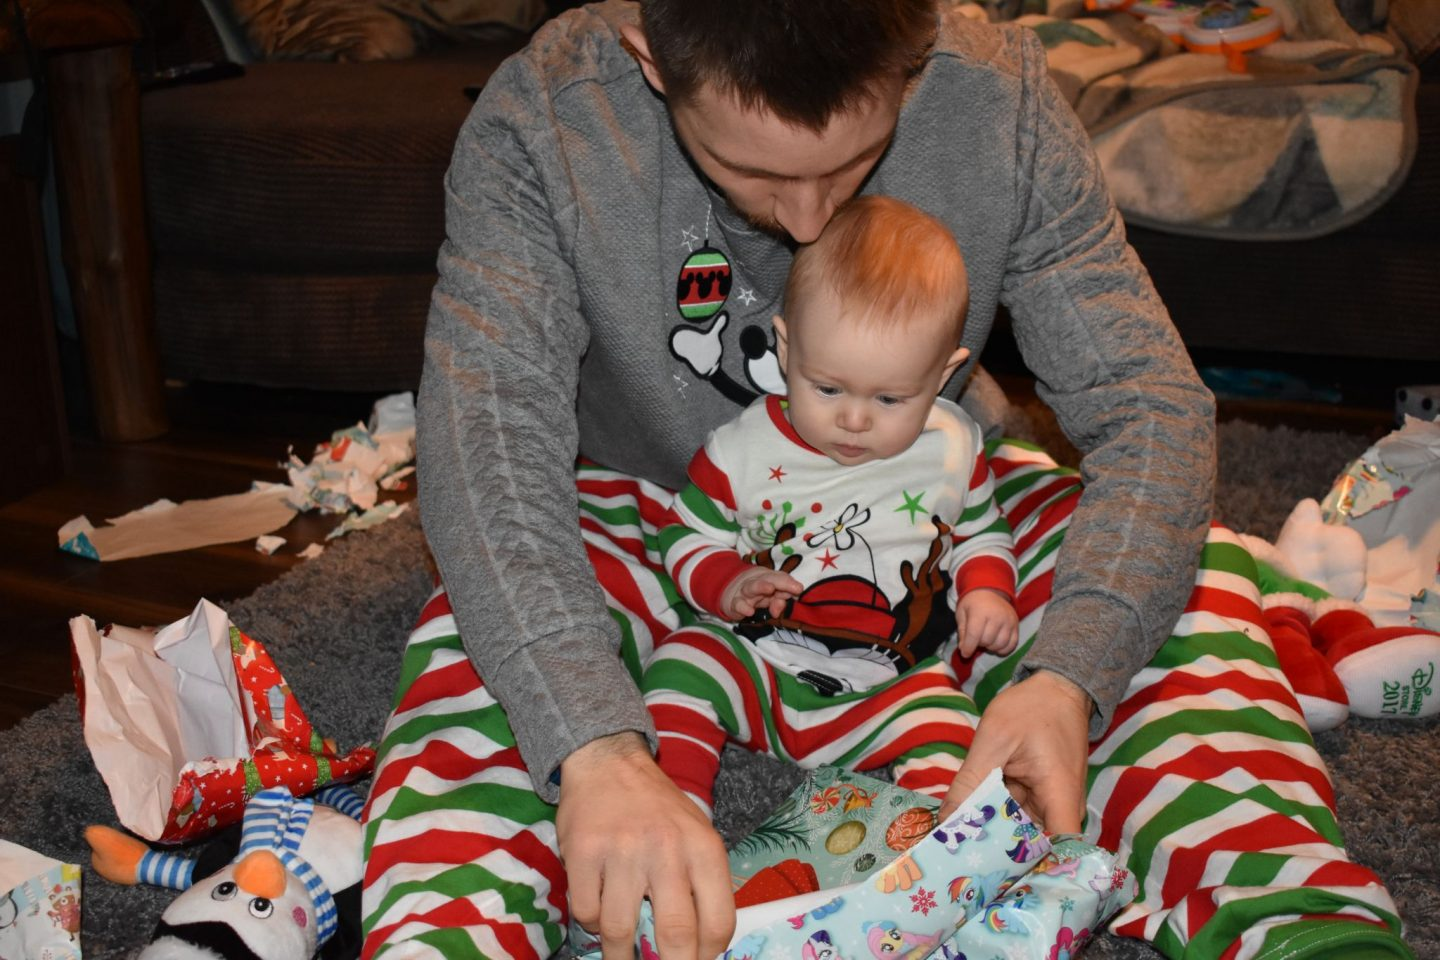 Opening presents with the baby on Christmas Morning